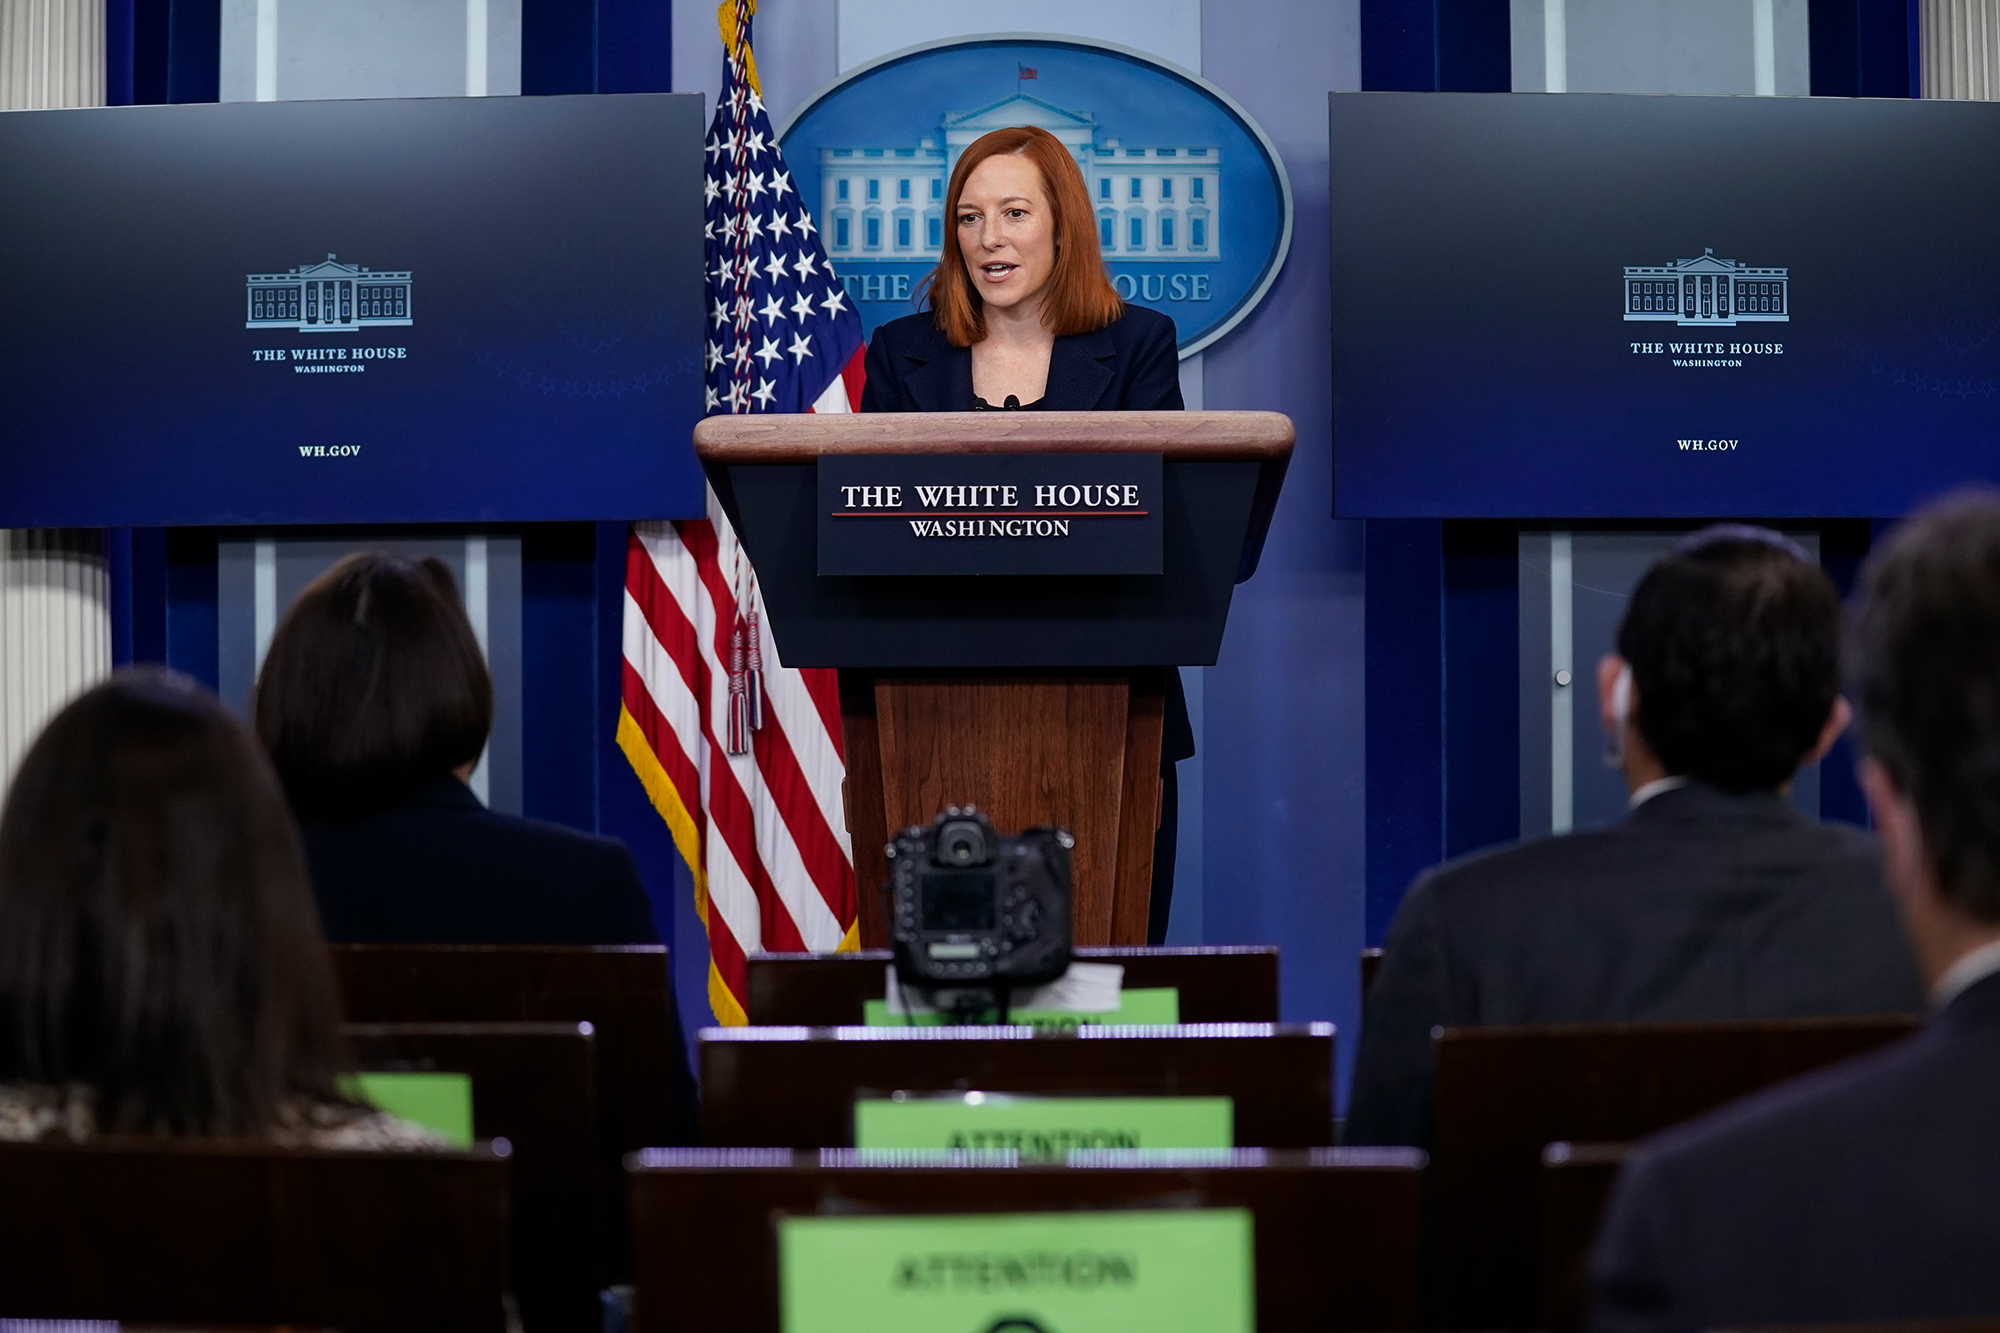 White House press secretary Jen Psaki speaks during a press briefing at the White House, Friday, Jan. 29, 2021, in Washington.